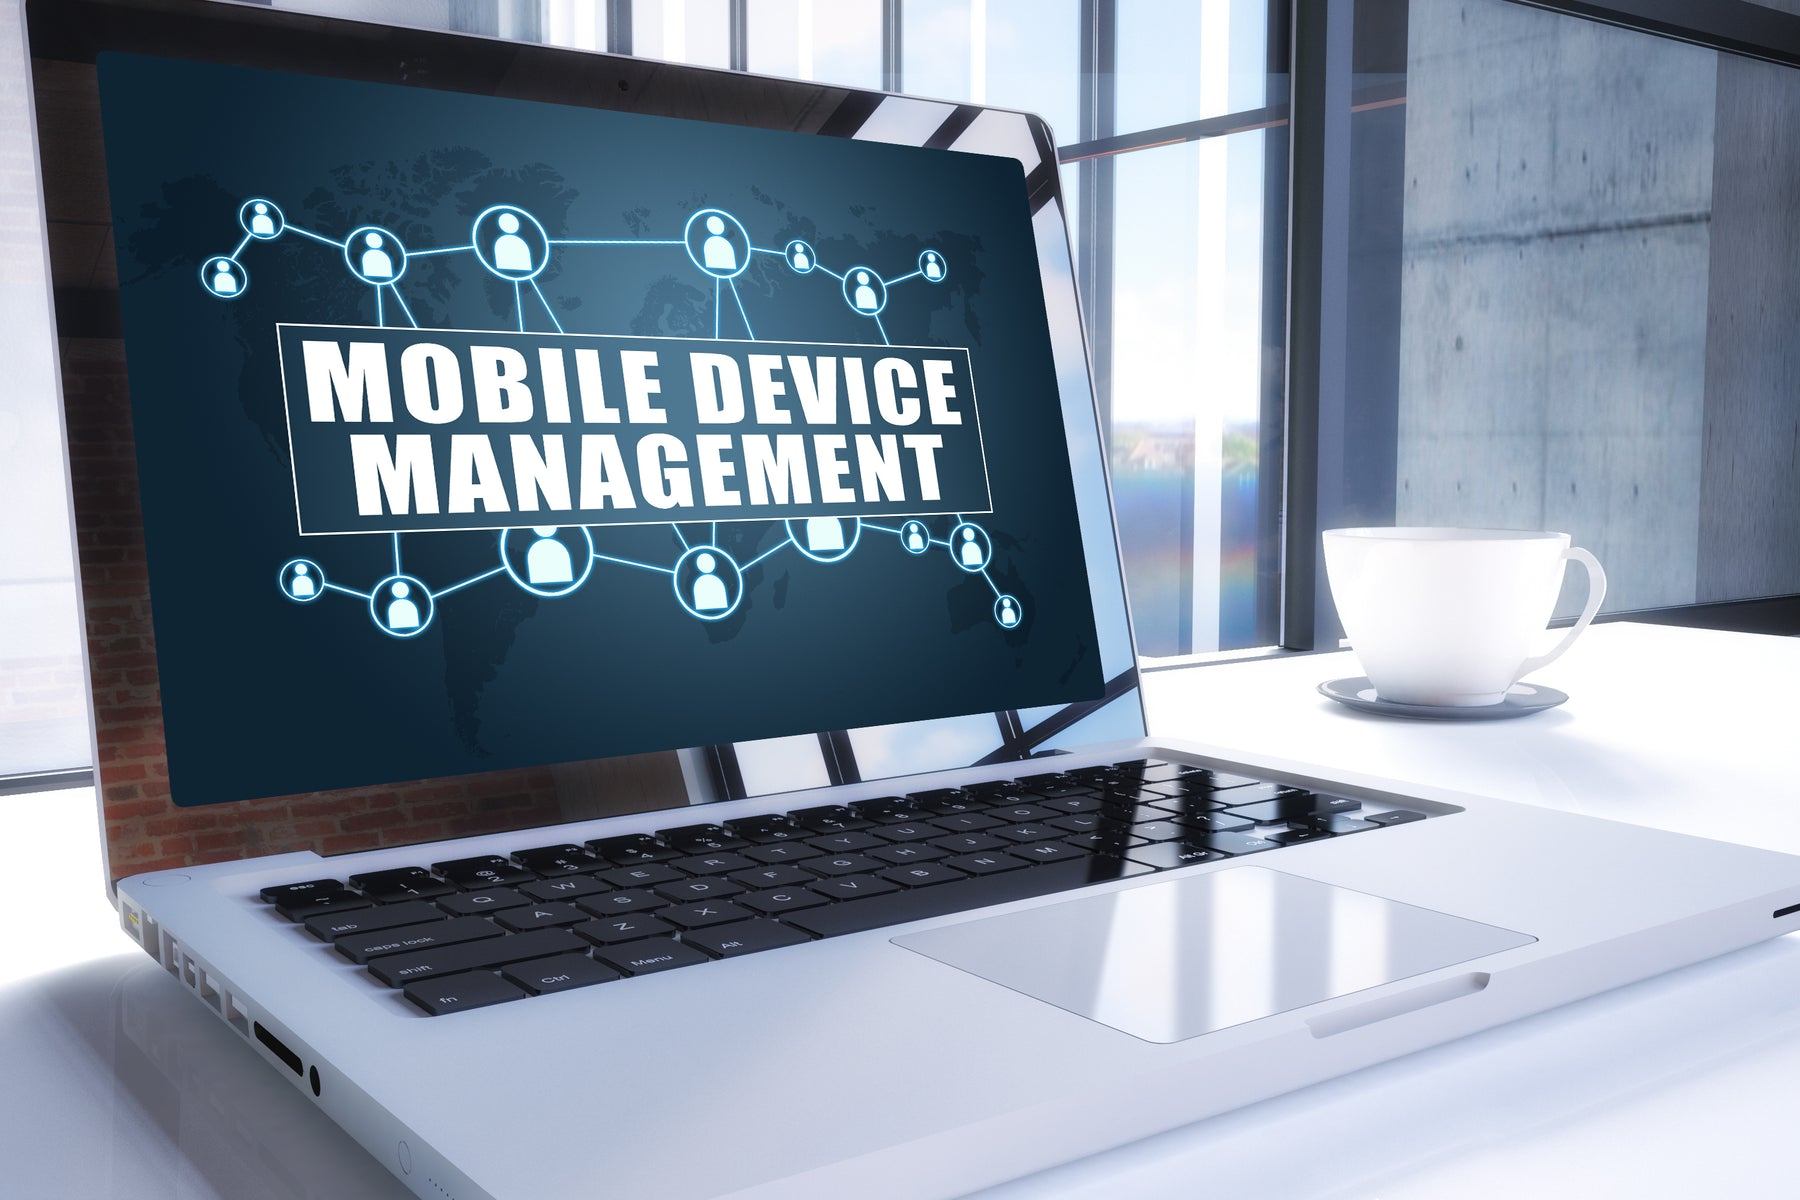 Still thinking that Mobile Device Management is a luxury rather than a necessity? You may wish to think again…